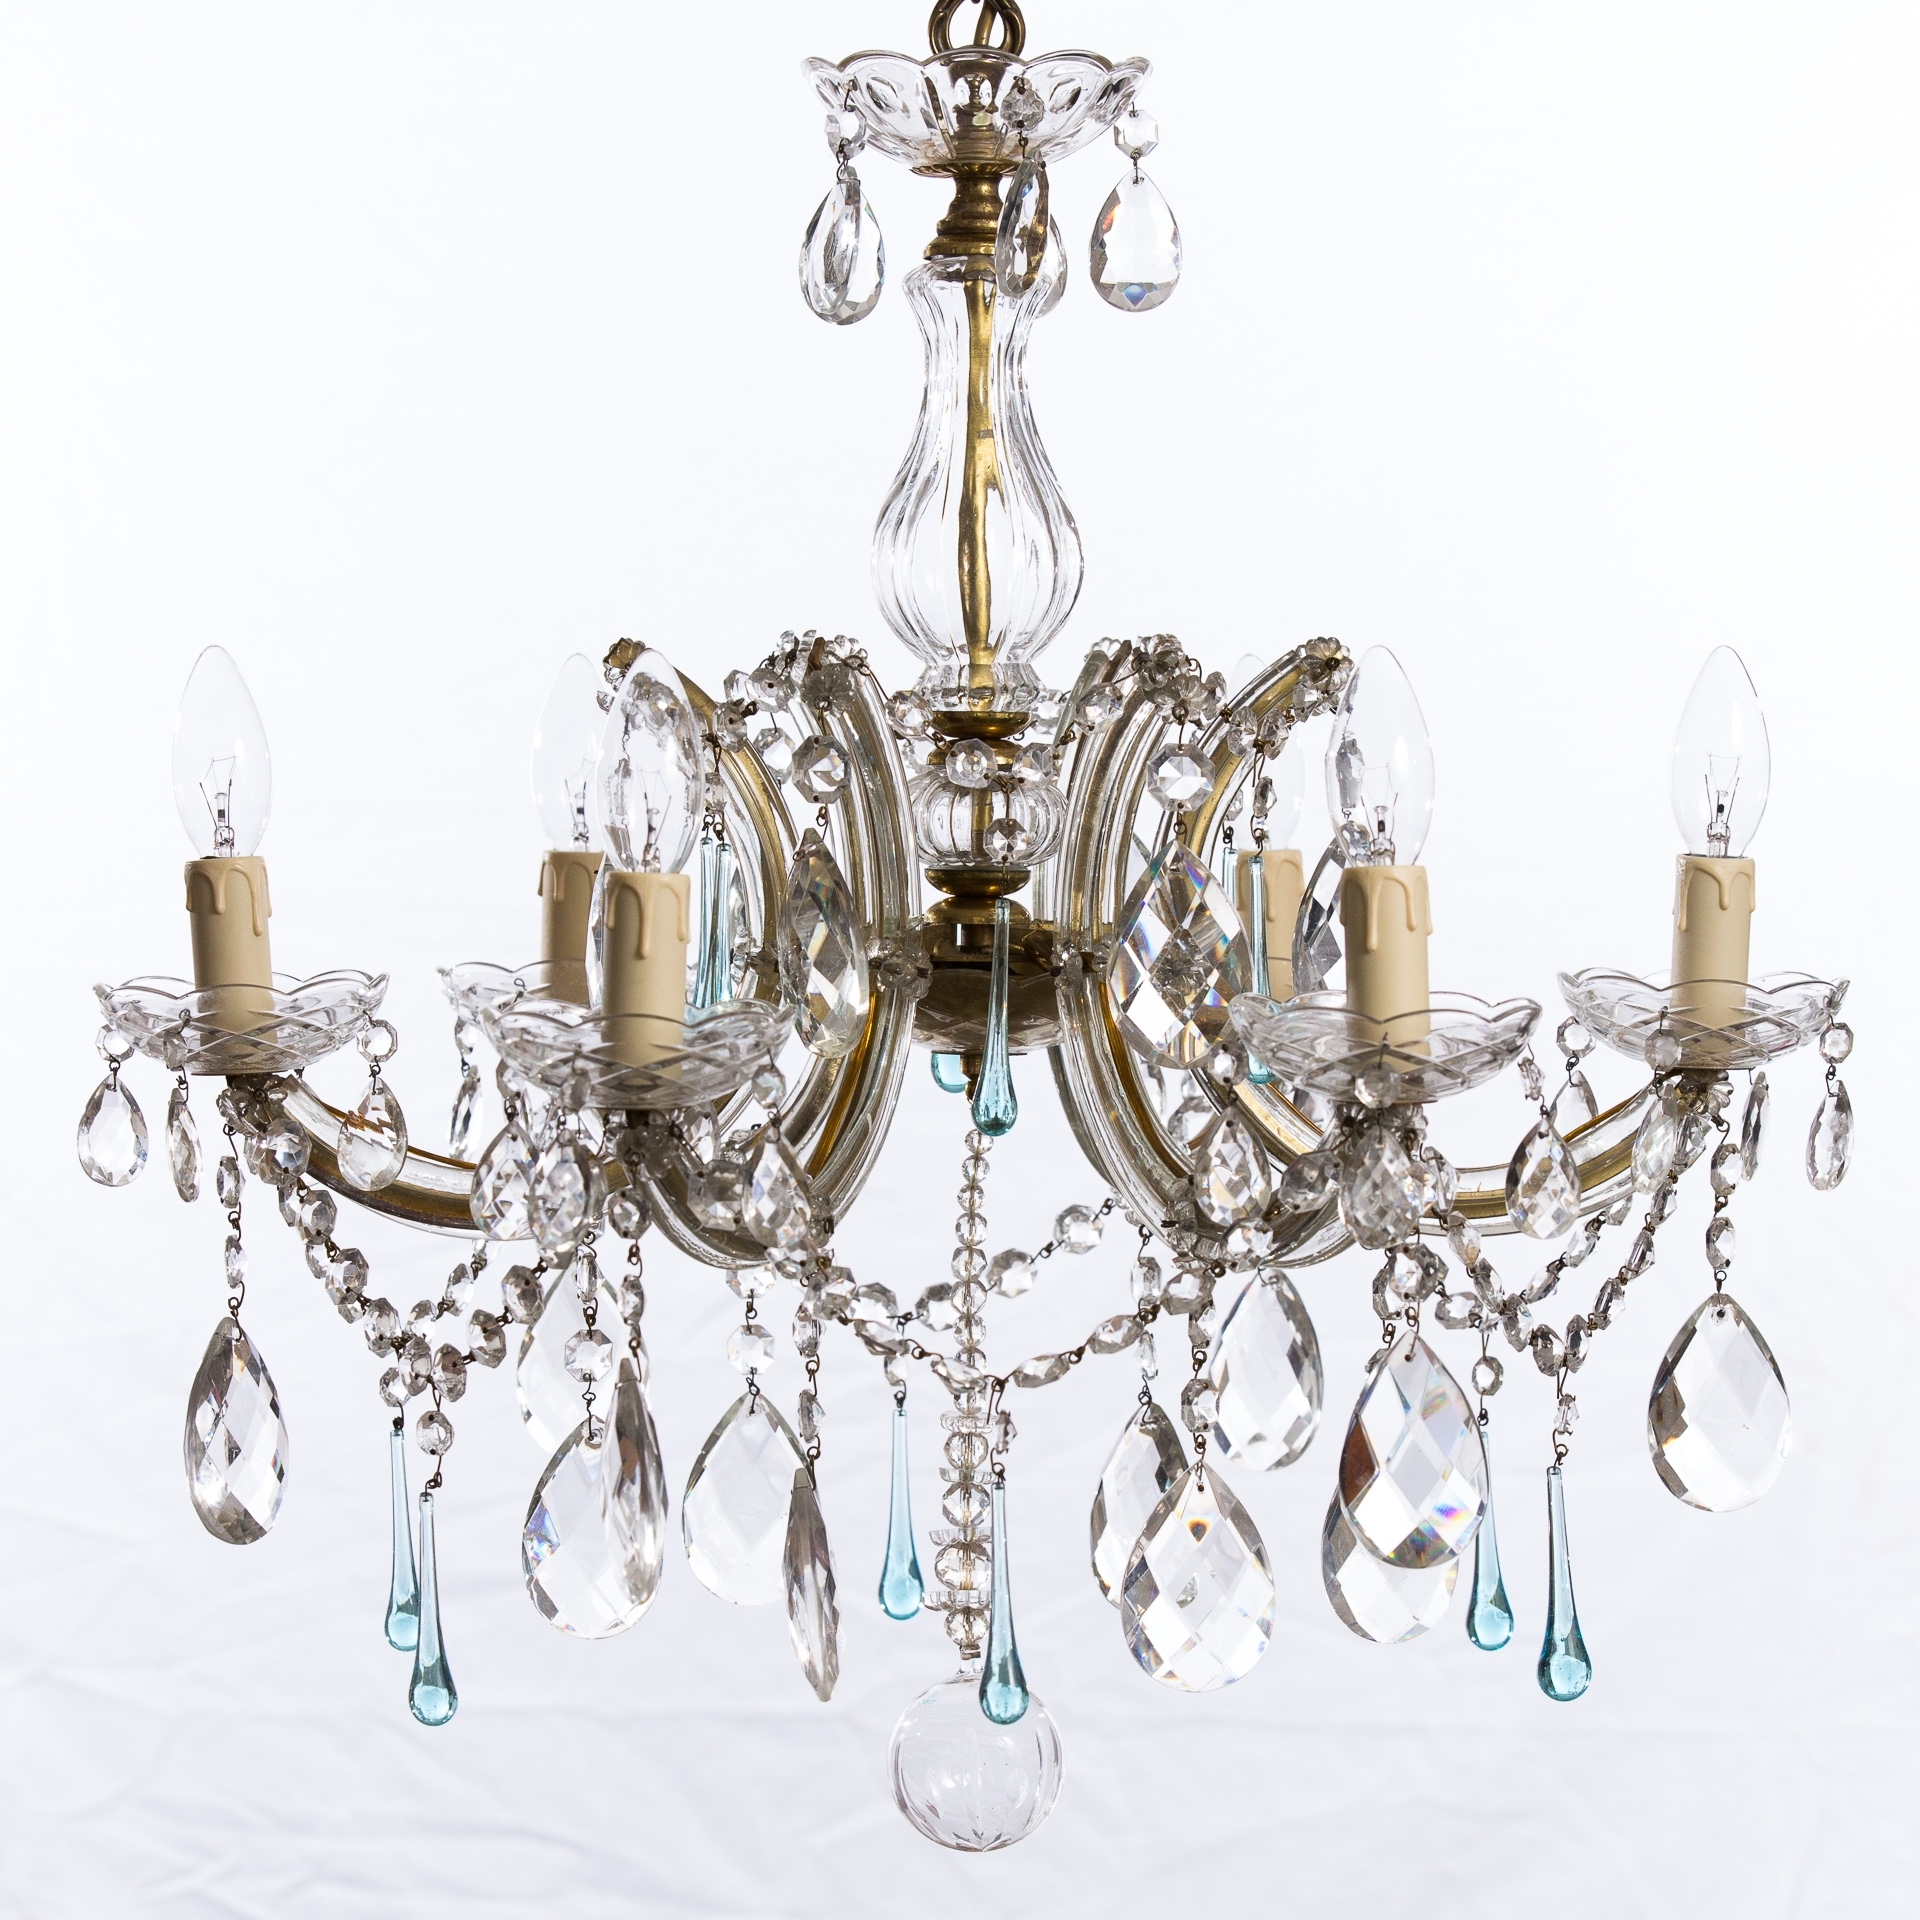 Fashionable Tips In Using Chandeliers For Bedrooms – Lighting And Chandeliers Intended For Chandeliers Vintage (View 8 of 20)